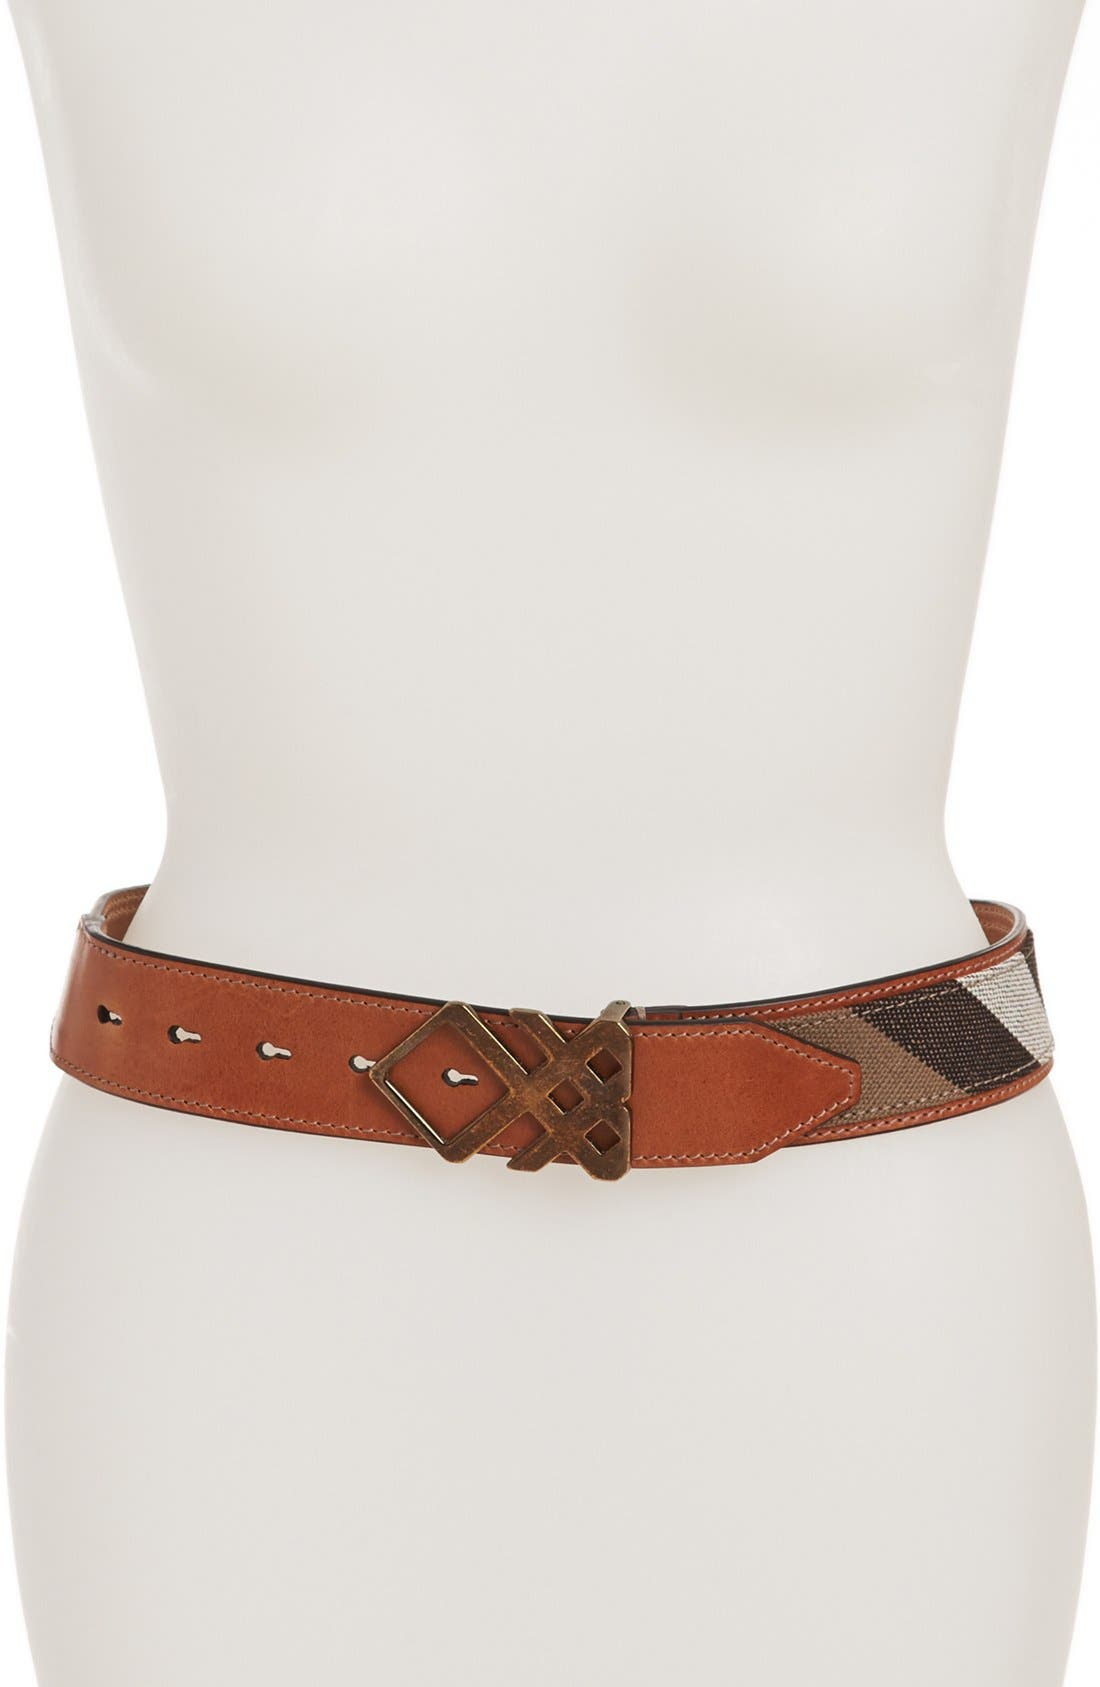 Alternate Image 1 Selected - Burberry Check Leather Trim Belt